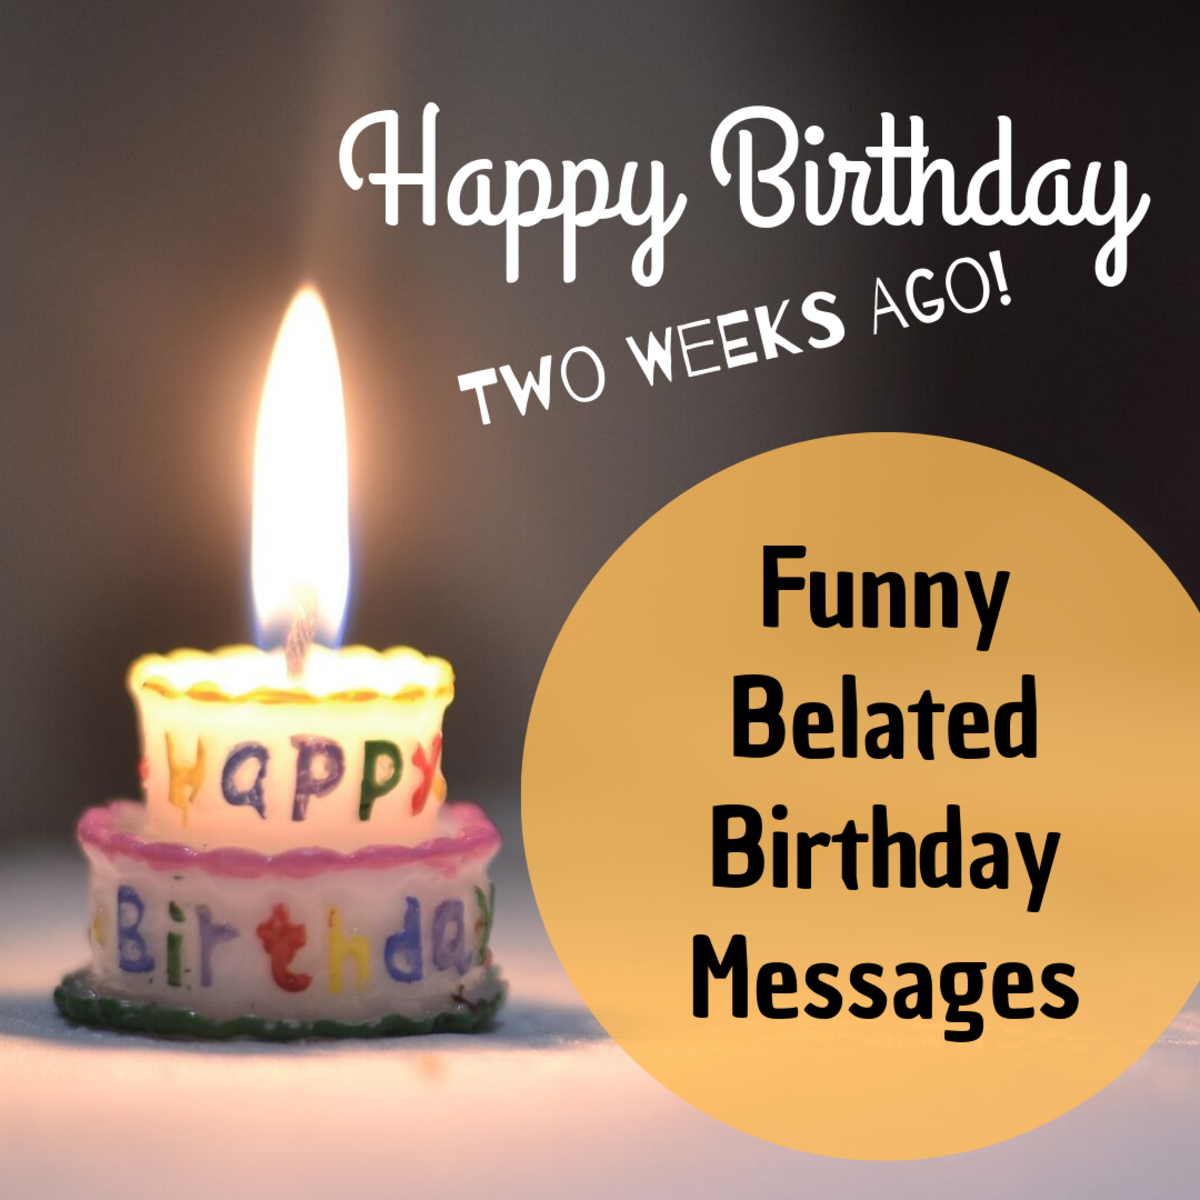 Funny Belated Happy Birthday Wishes Late Messages And Greetings Holidappy